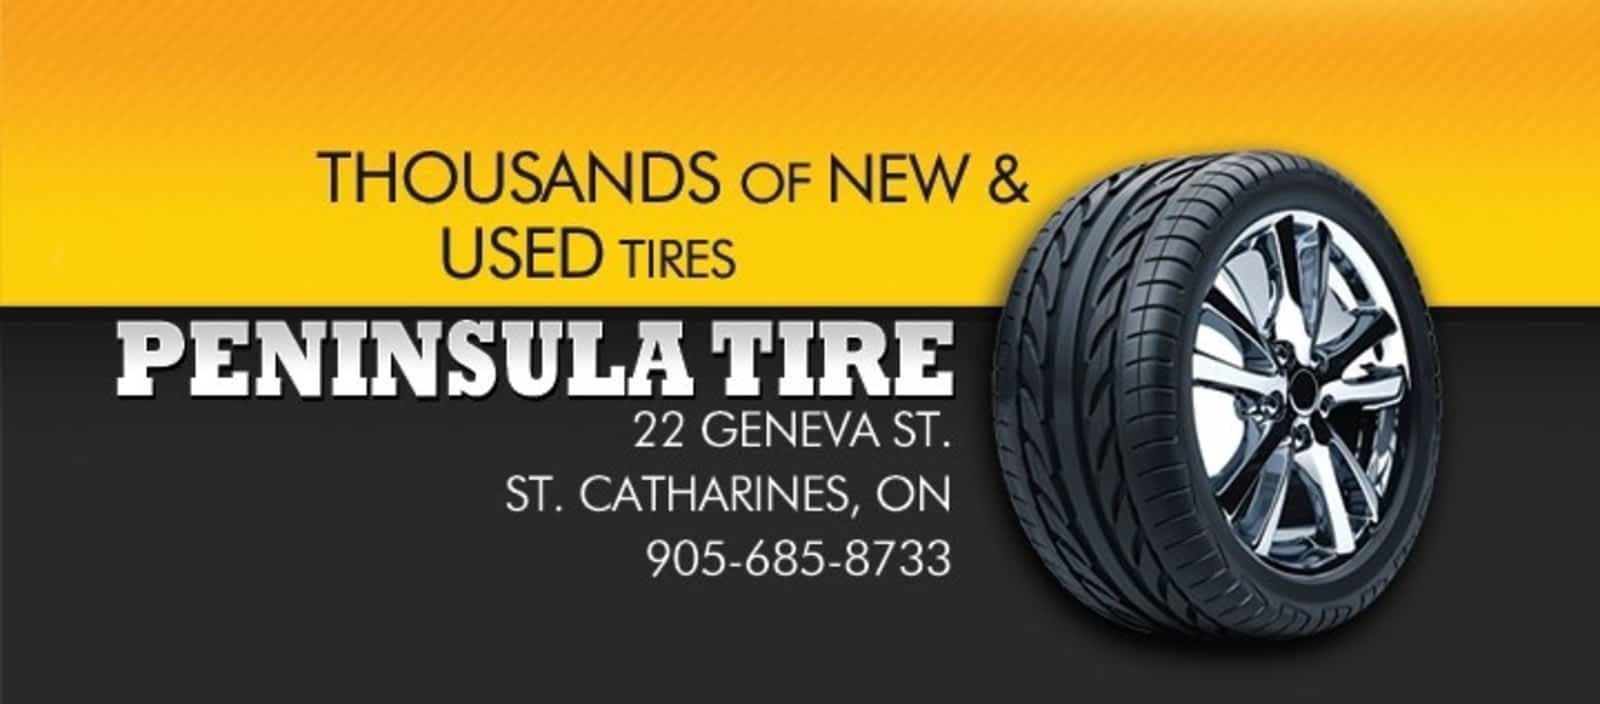 Tire Quotes Peninsula Tire  Opening Hours  322 Geneva St St Catharines On